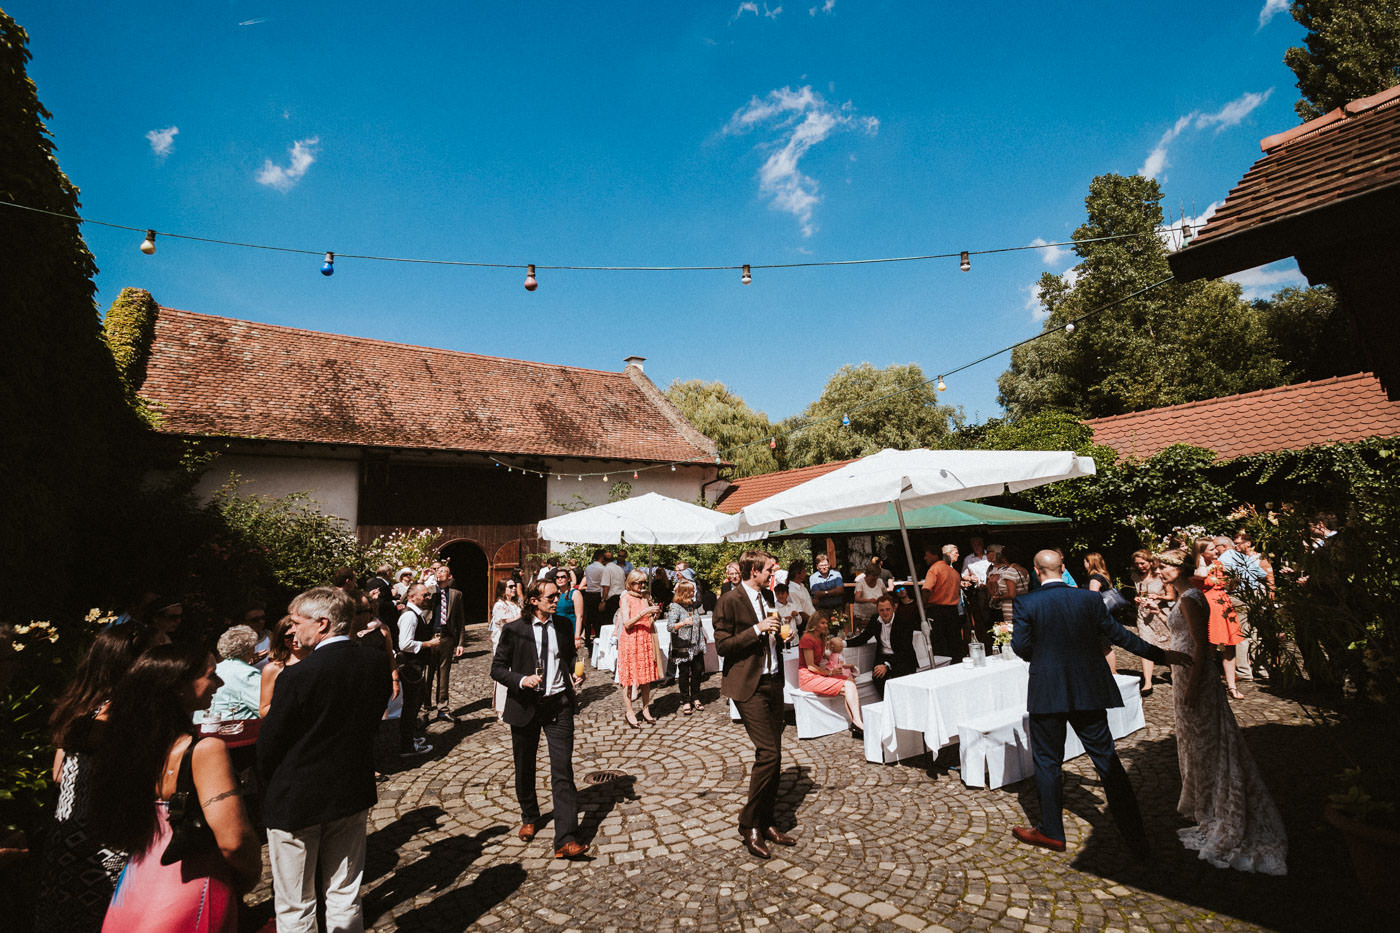 Relaxed atmosphere during a wedding reception in the courtyard of Weidenmühle winery